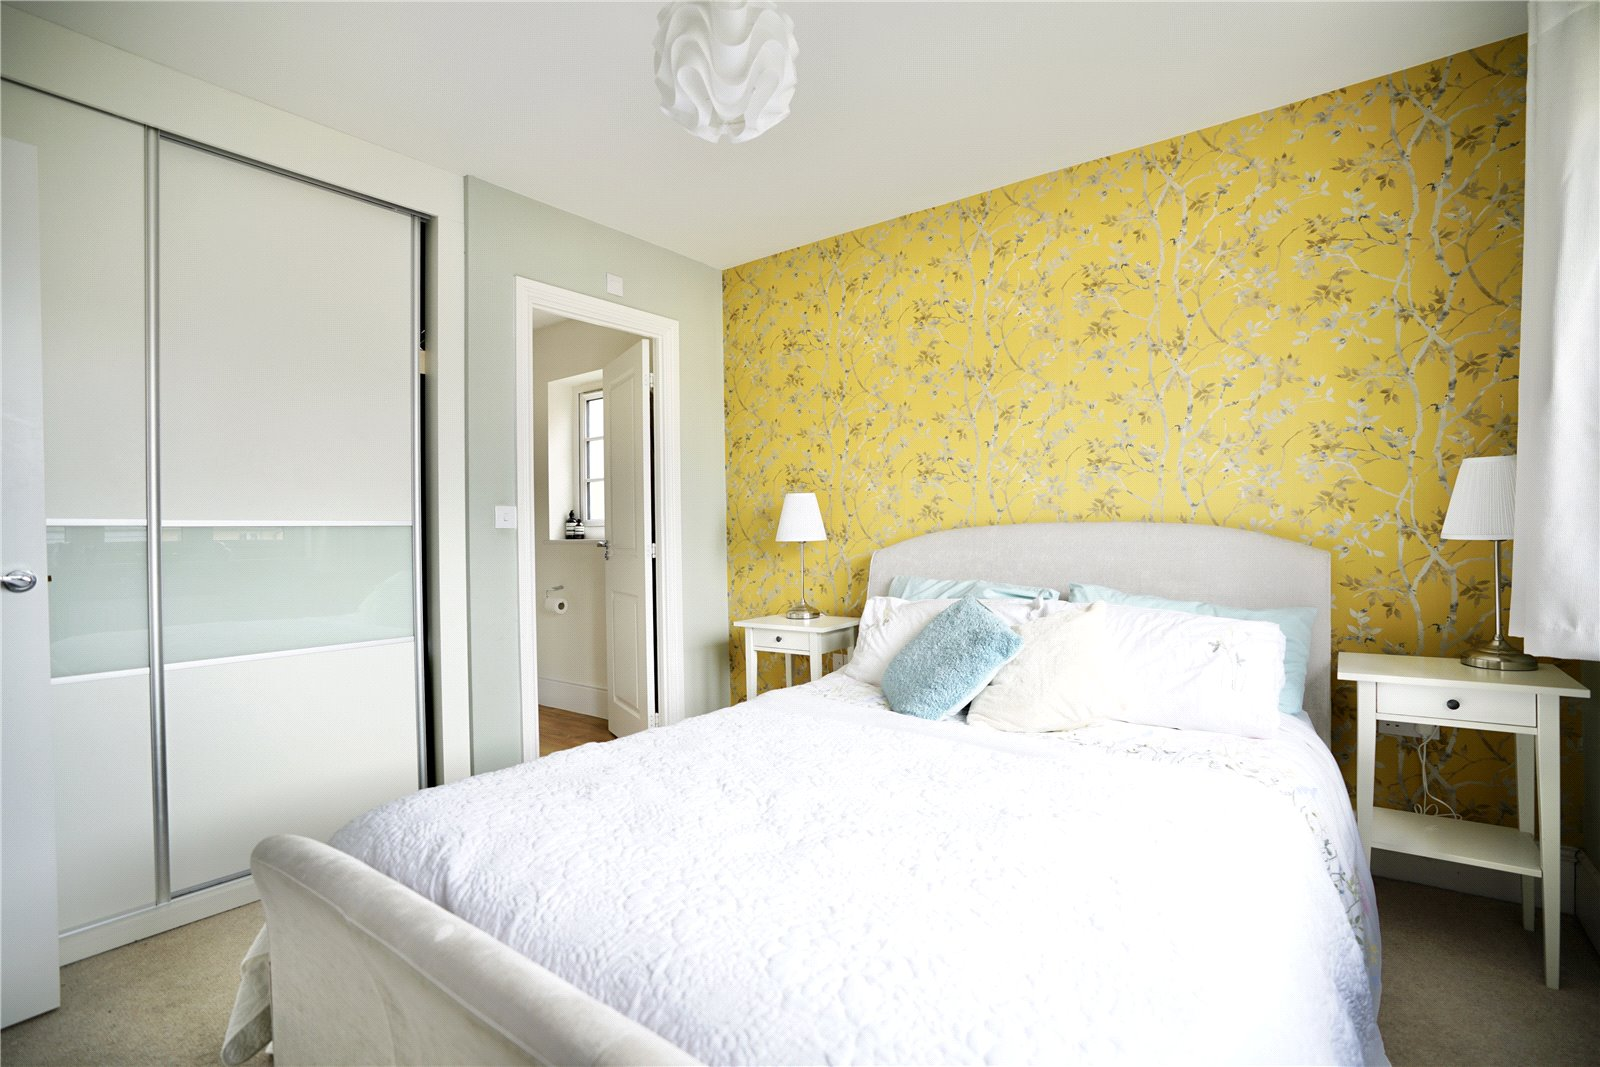 4 bed house for sale in Field Gate Close, St. Neots  - Property Image 8